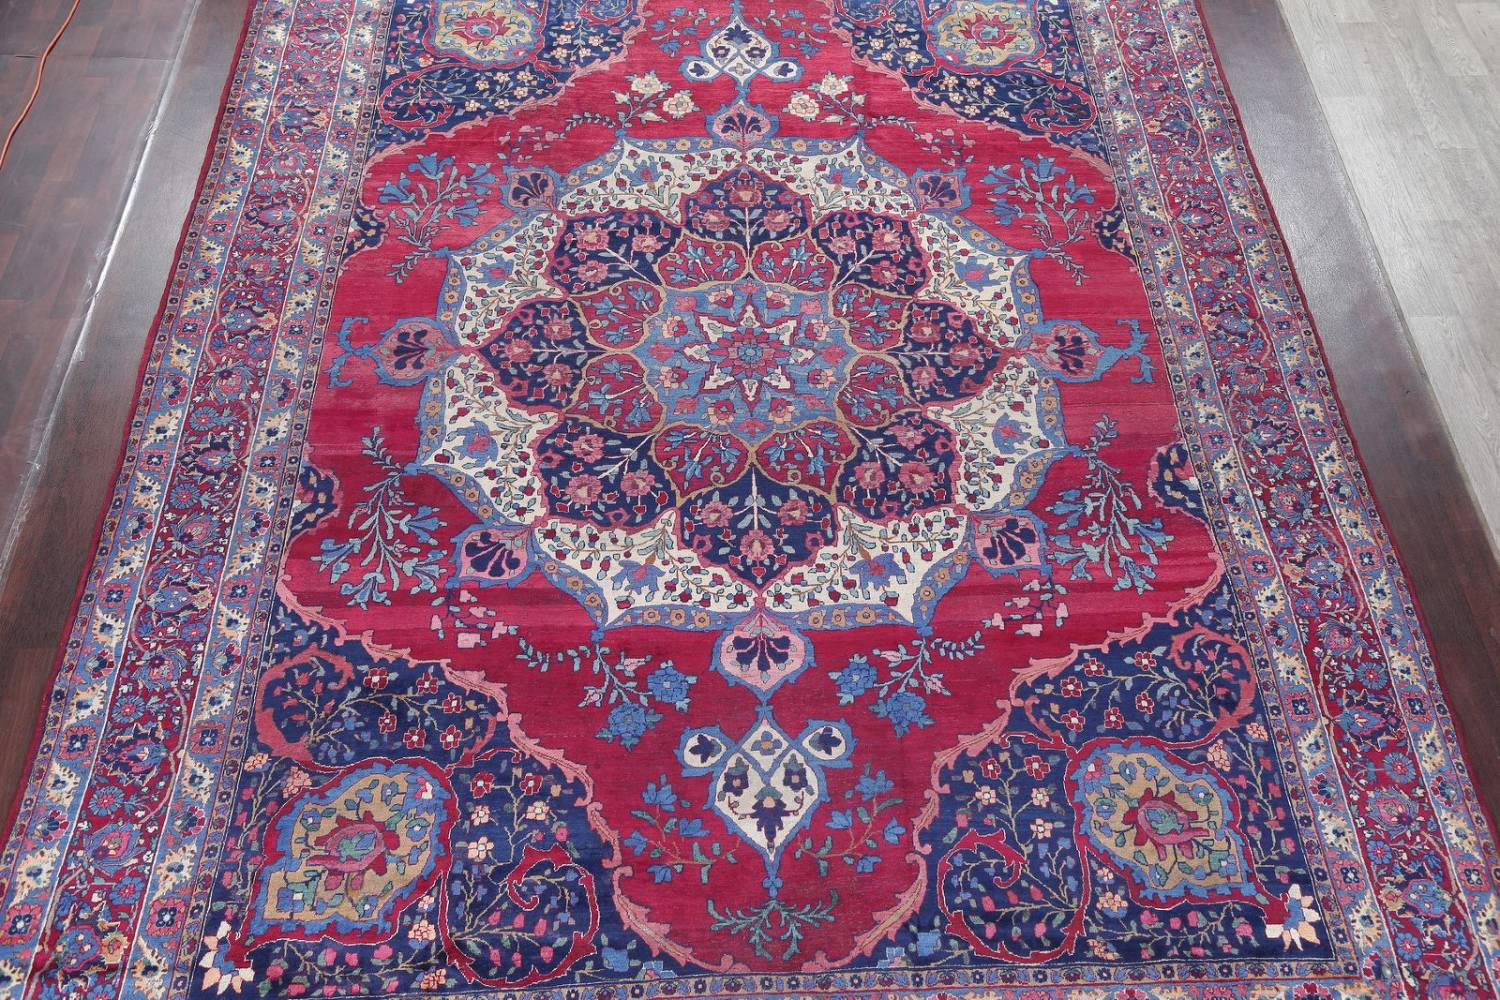 Pre-1900 Vegetable Dye Yazd Antique Persian Hand-Knotted  11x15 Wool Area Rug image 3